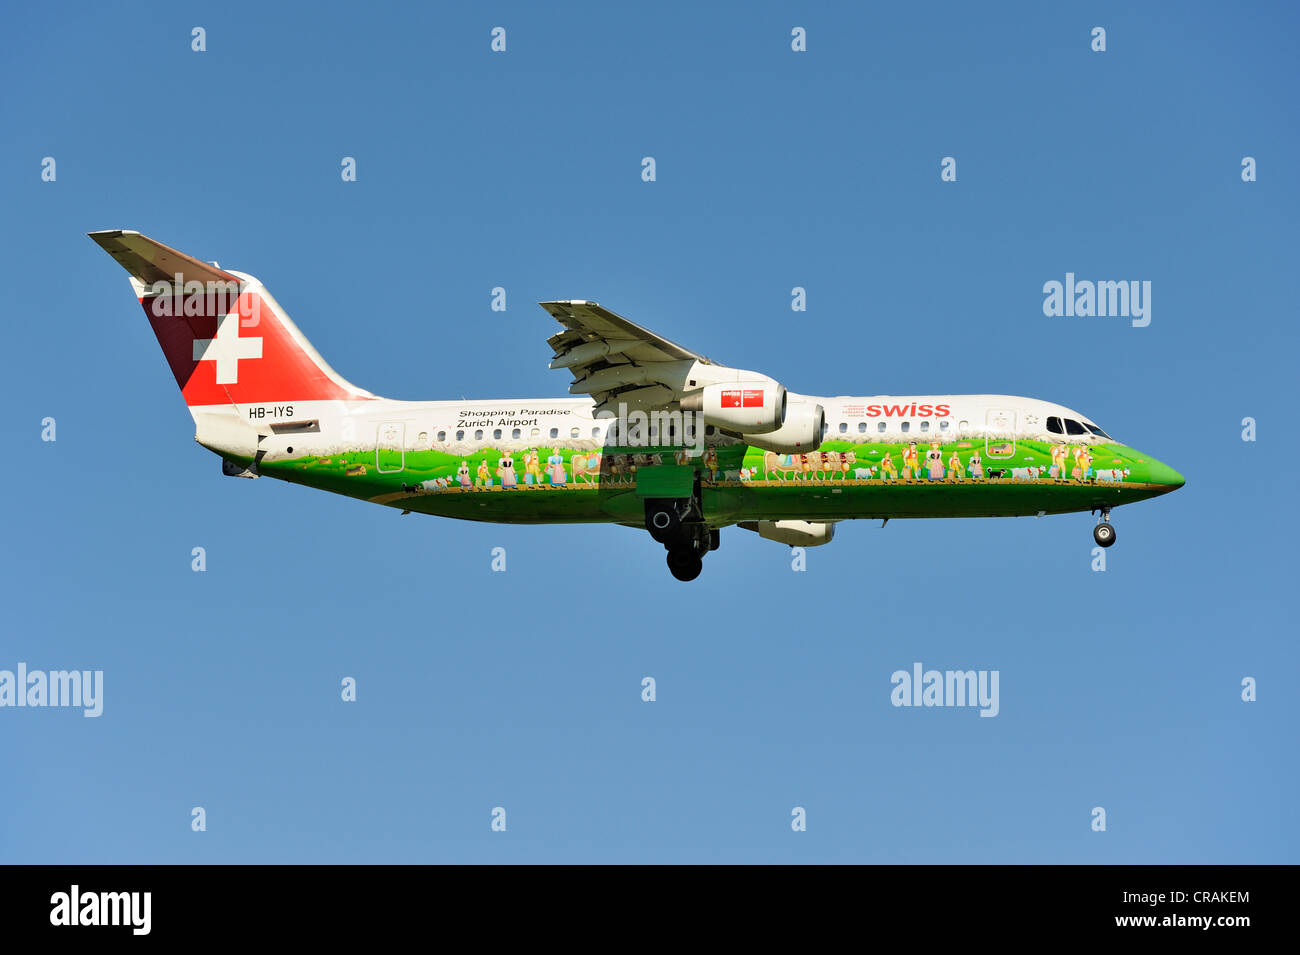 Swiss BAE Systems Avro 146-RJ100 with special livery, Shopping Paradise Zurich Airport, during the landing approach - Stock Image